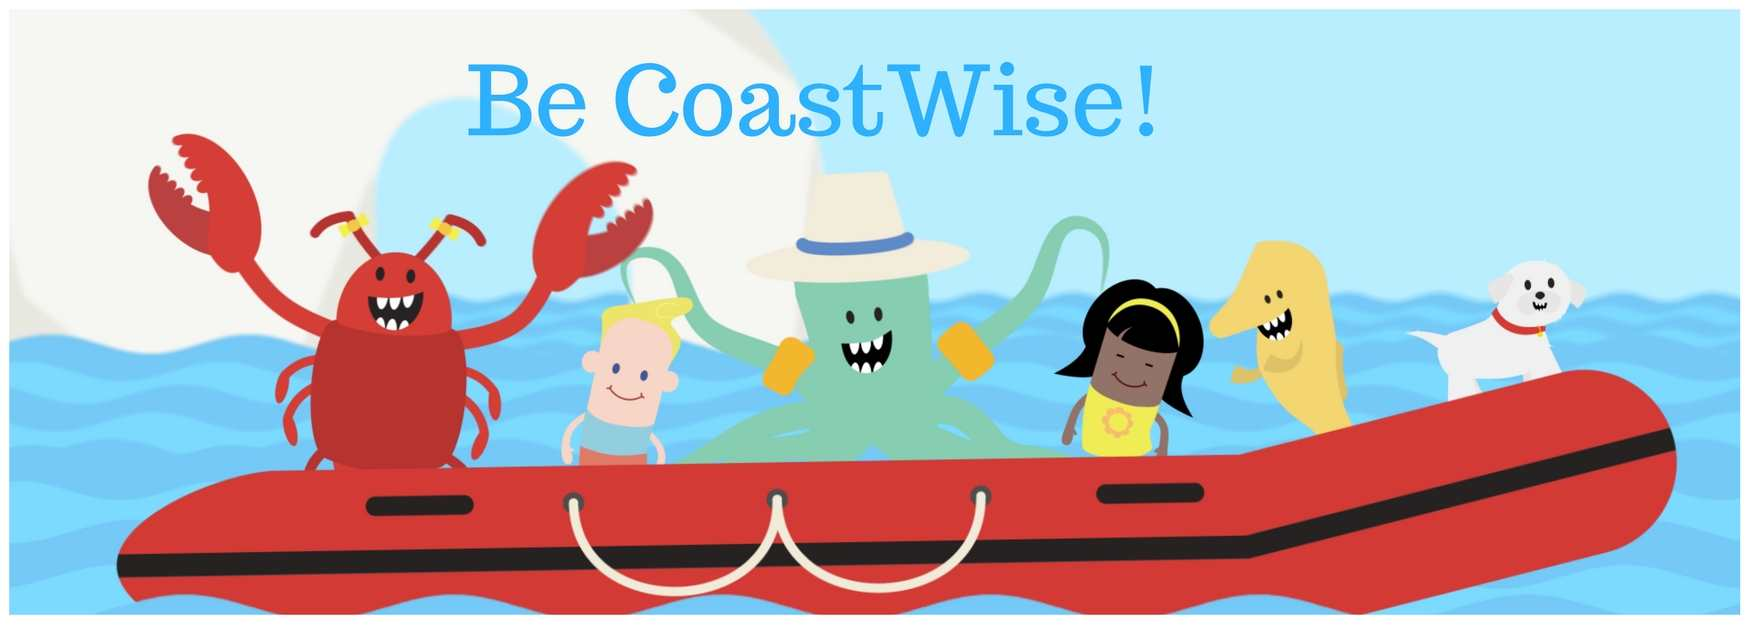 Be Smart. Be CoastWise!